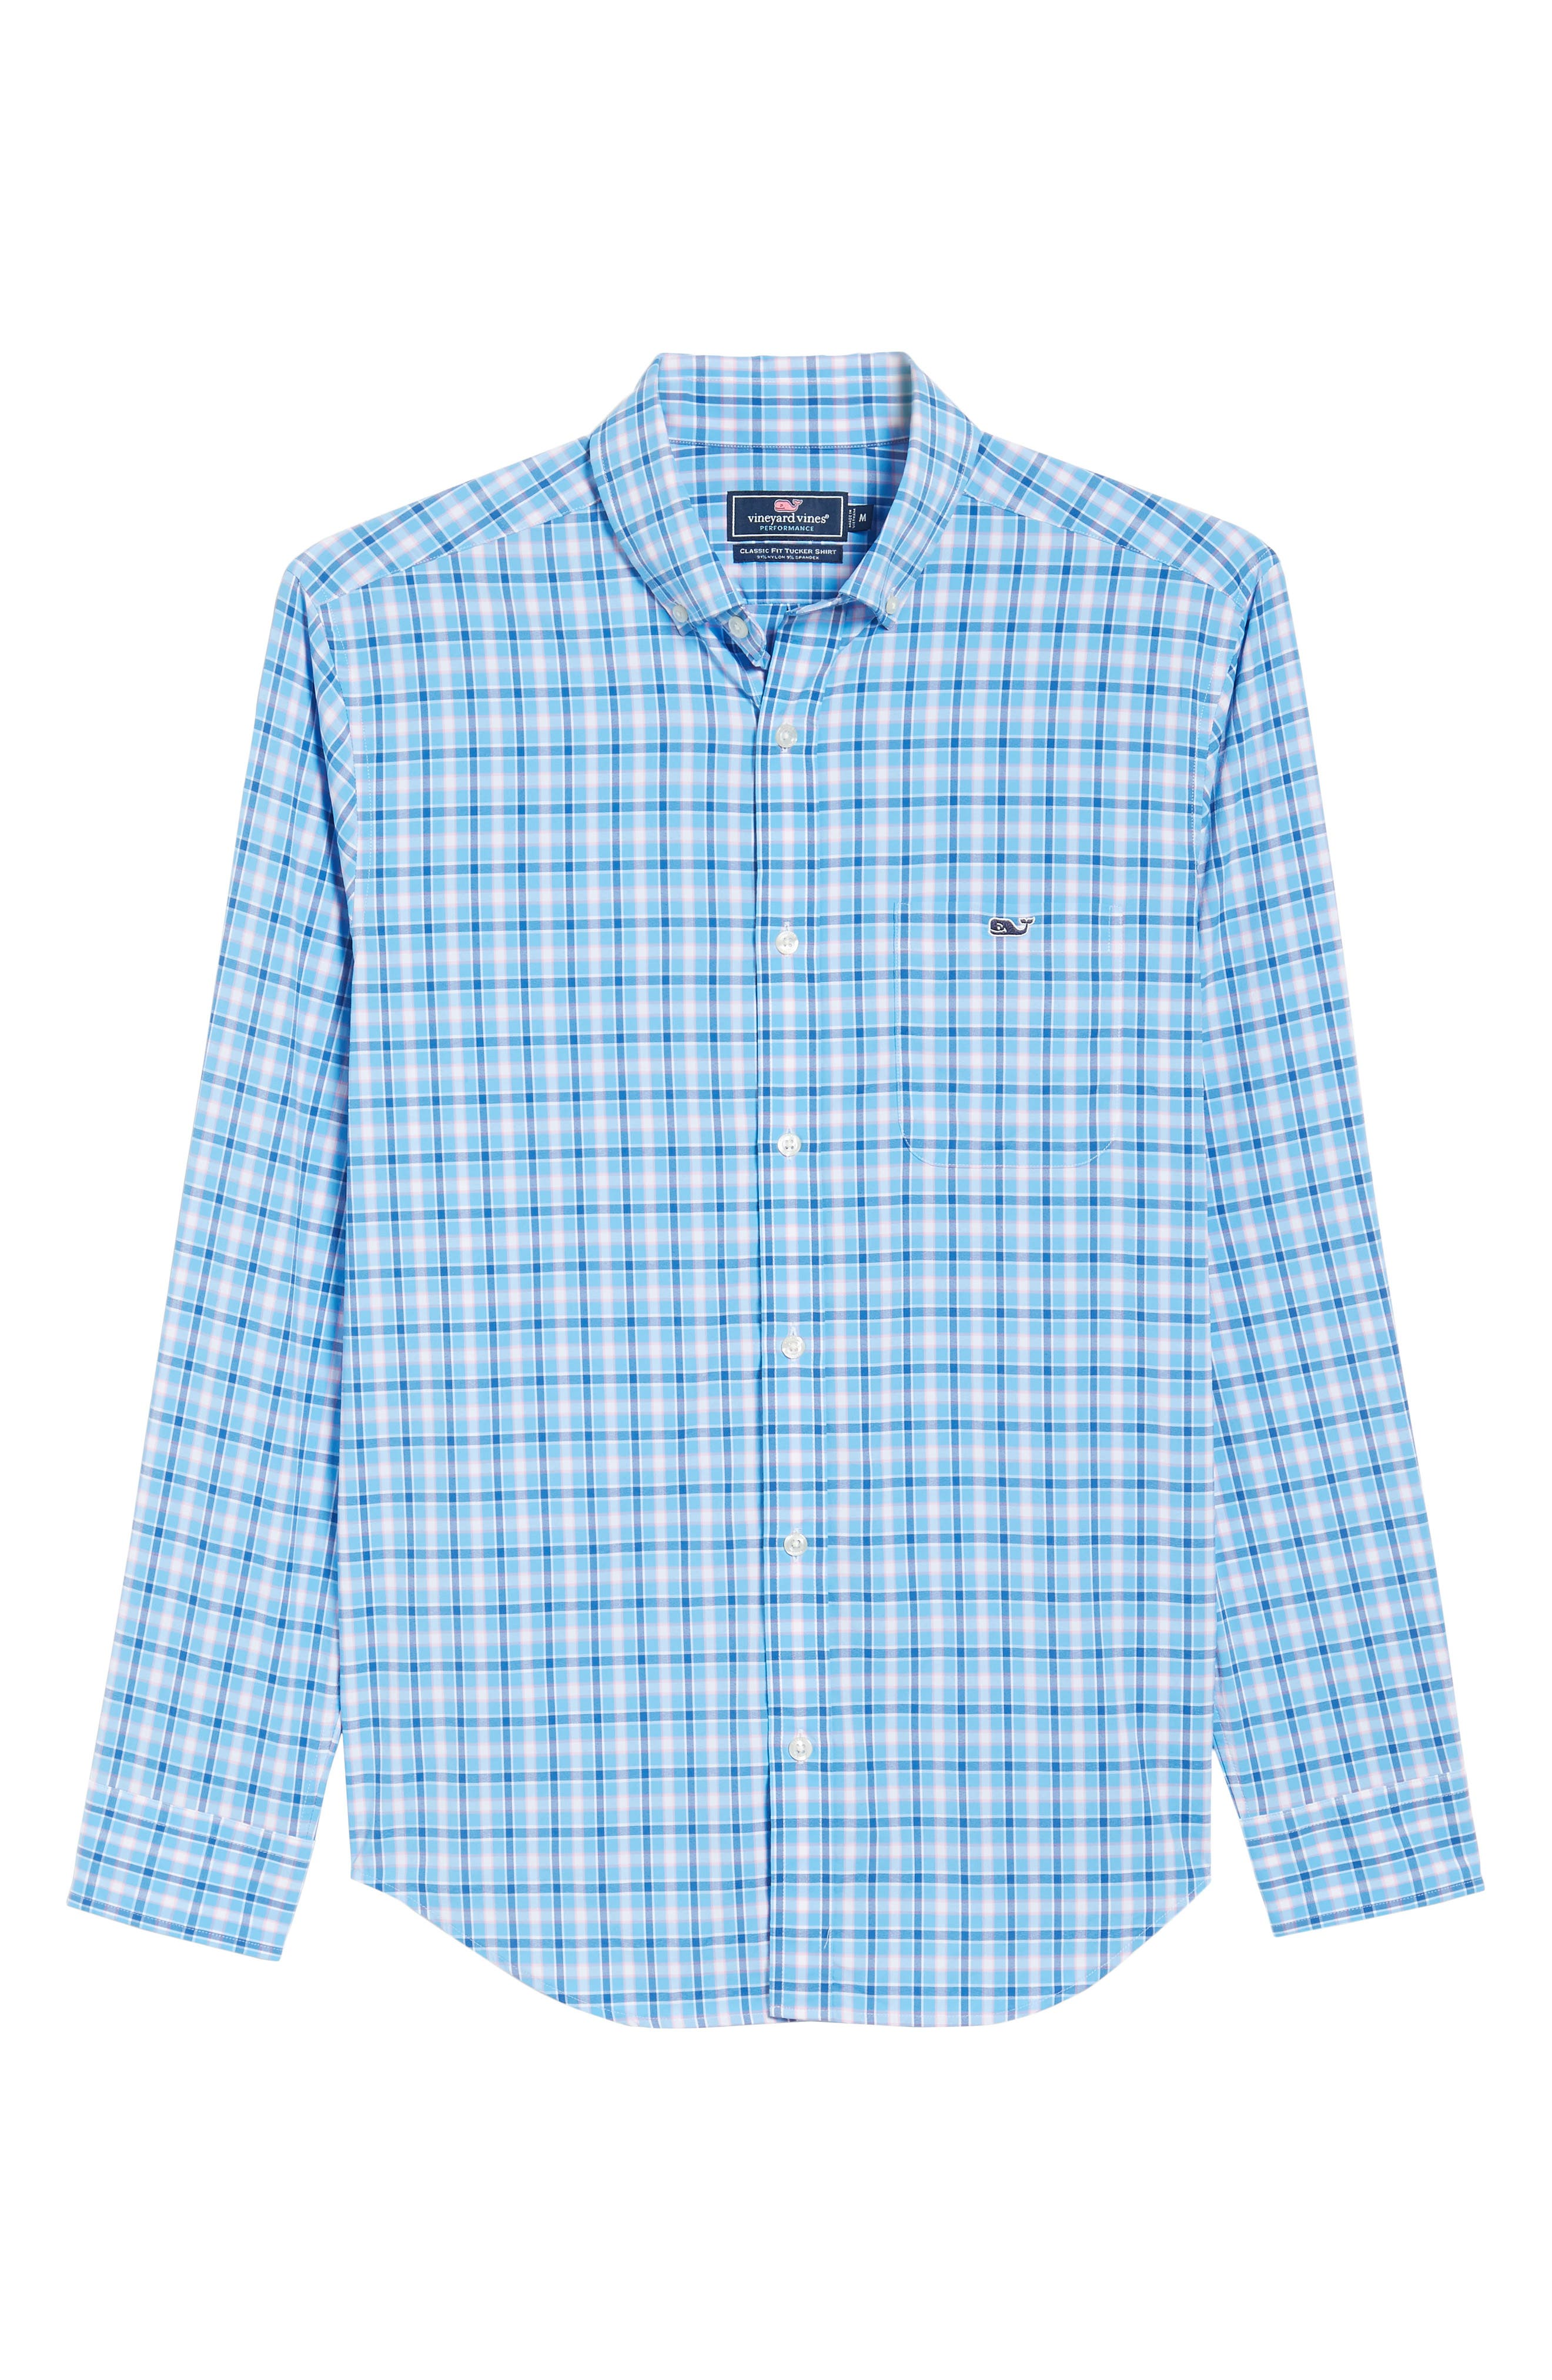 Lyford Cay Classic Fit Stretch Check Sport Shirt,                             Alternate thumbnail 6, color,                             Ocean Breeze